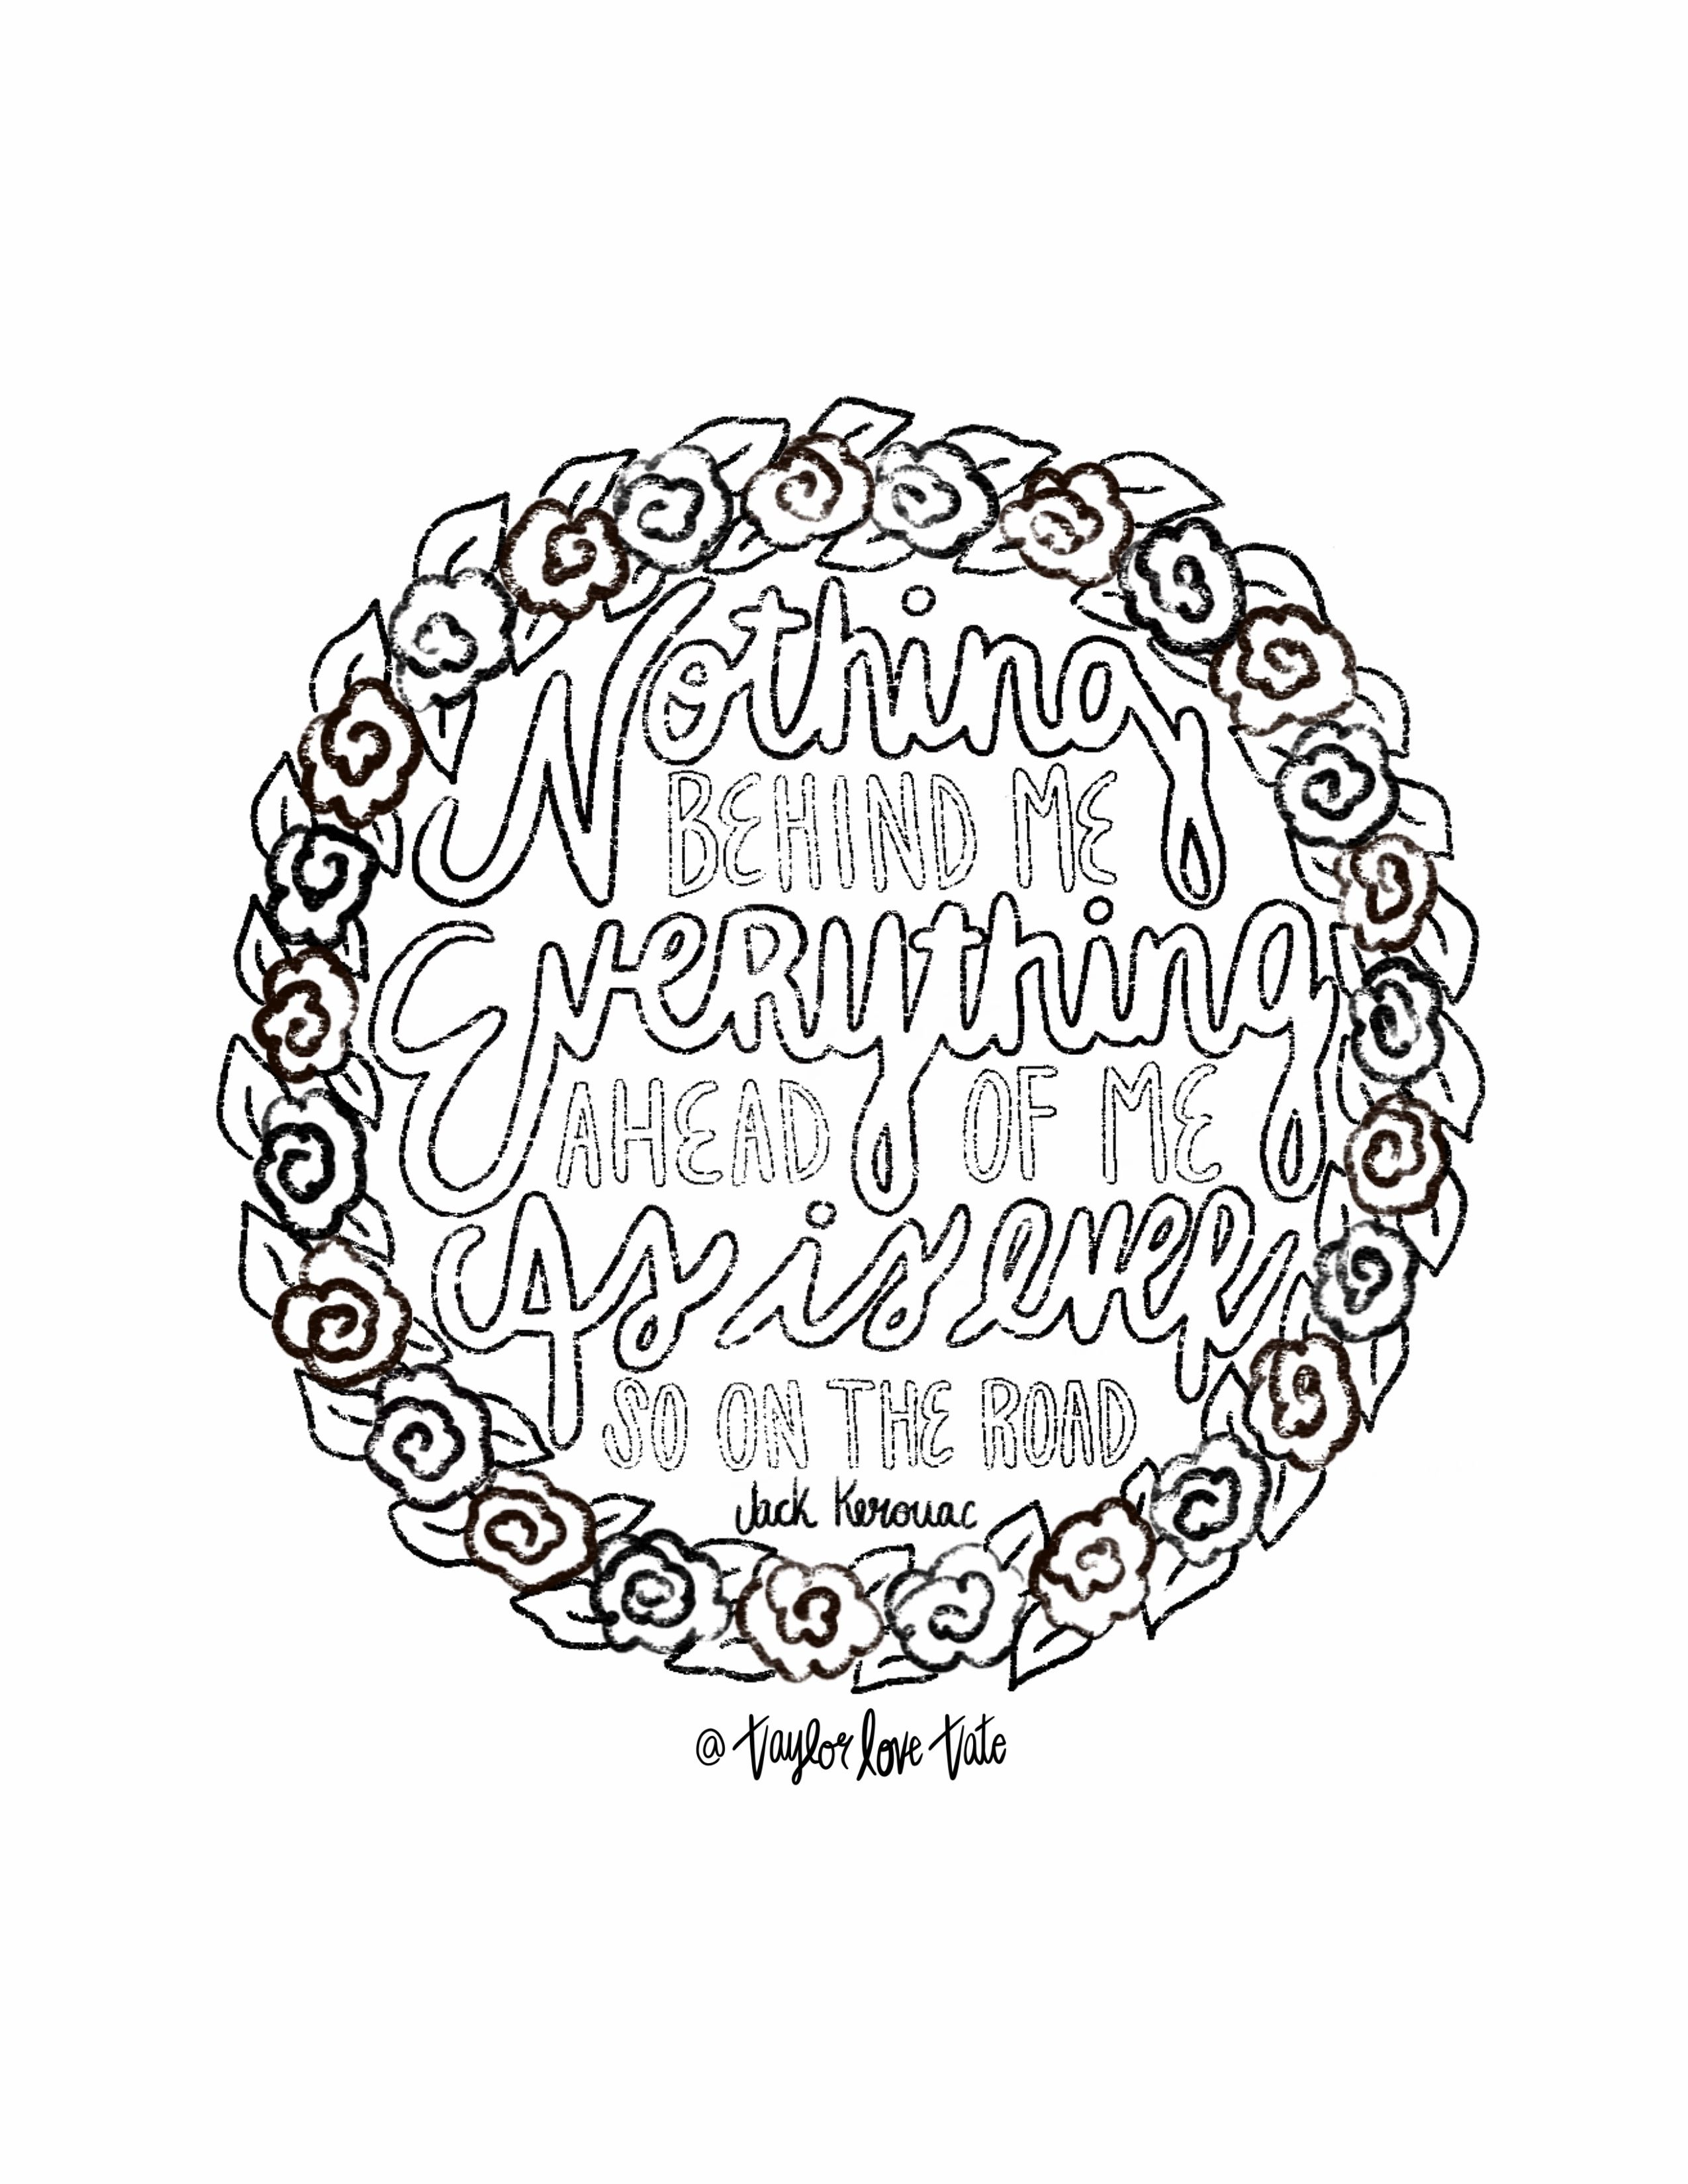 Jack Kerouac Quote Coloring Page Printable With Flower Crown Quote Coloring Pages Coloring Pages Handlettering Quotes